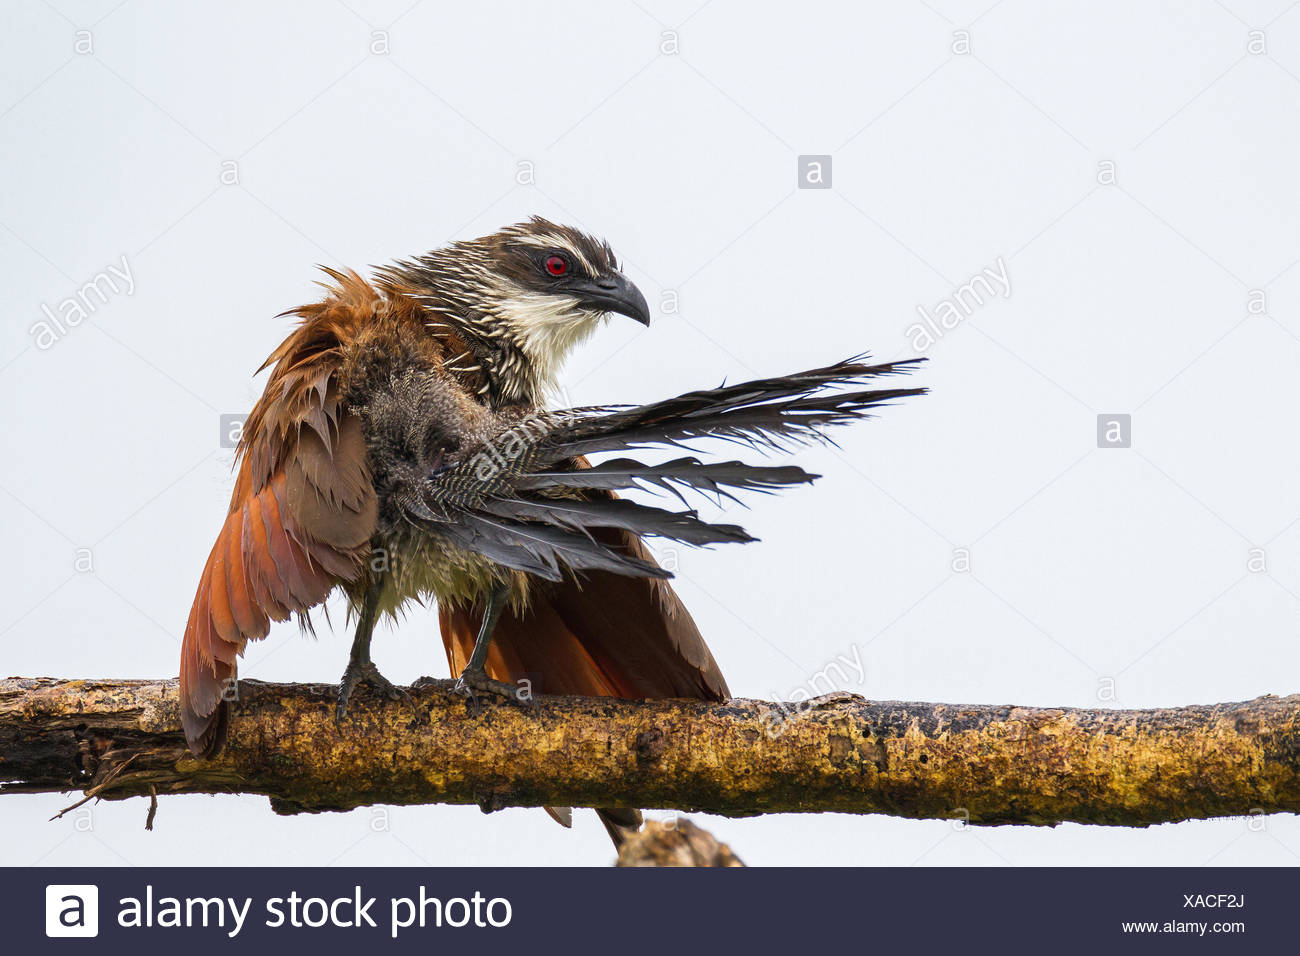 White-browed coucal, Centropus superciliosus, drying its wing. - Stock Image